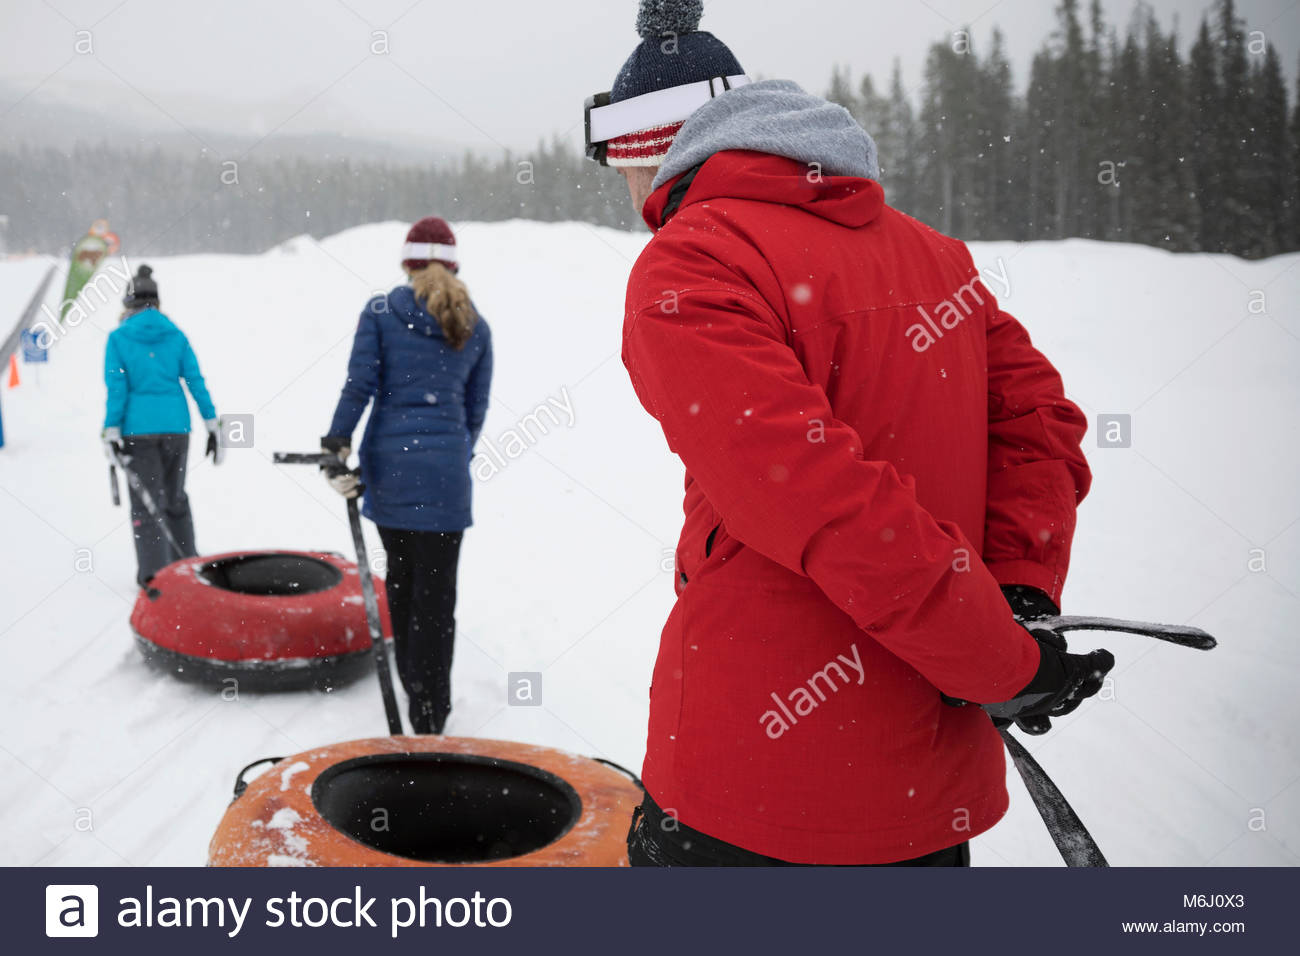 Family pulling inner tubes in snow at tube park - Stock Image